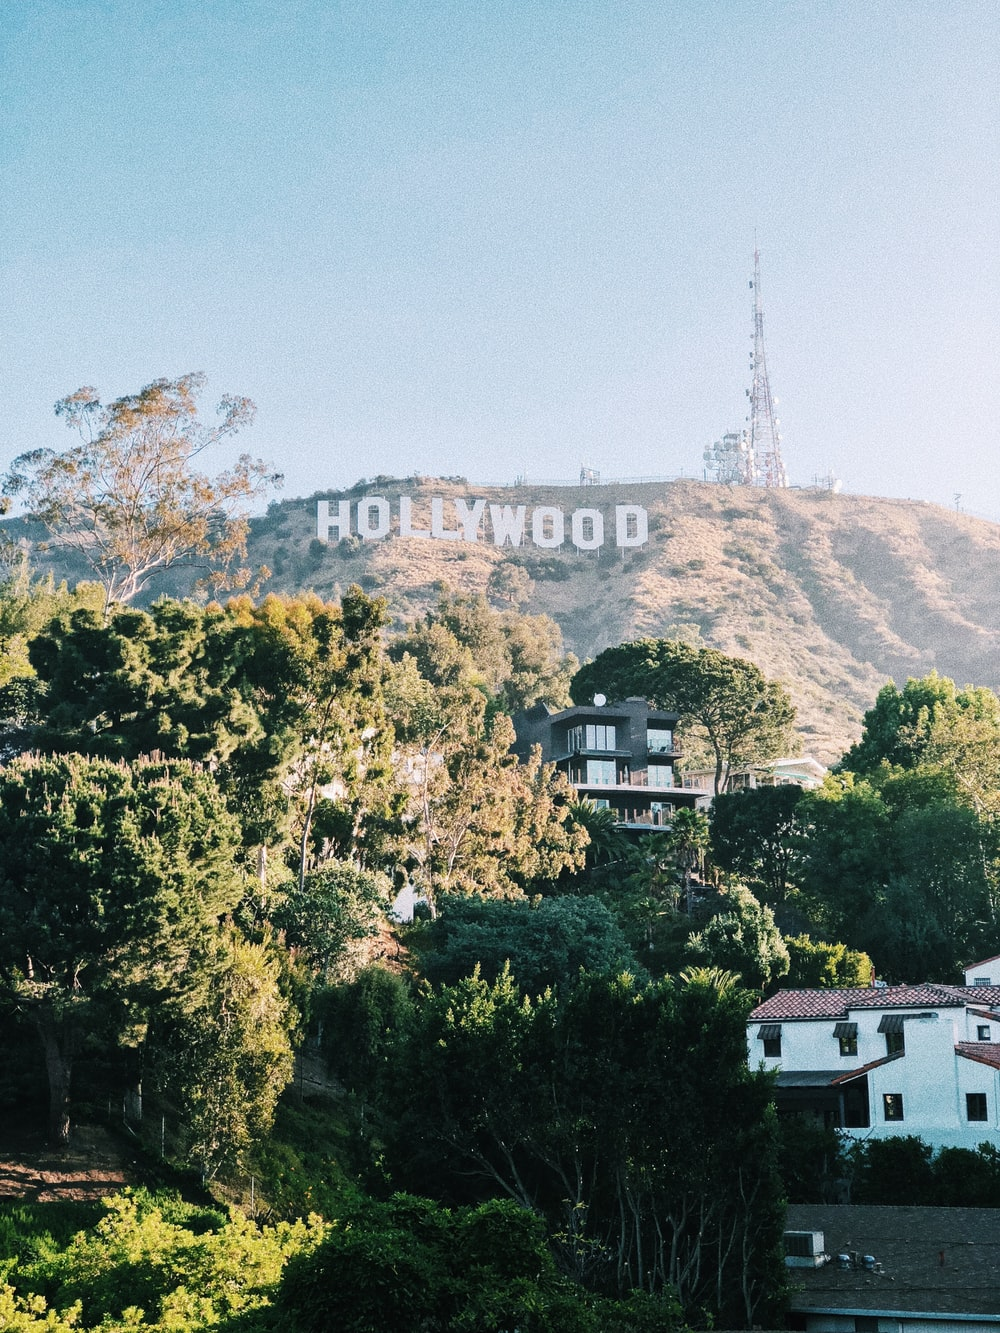 Hollywood Sign Los Angeles Tower And Blue Hd Photo By